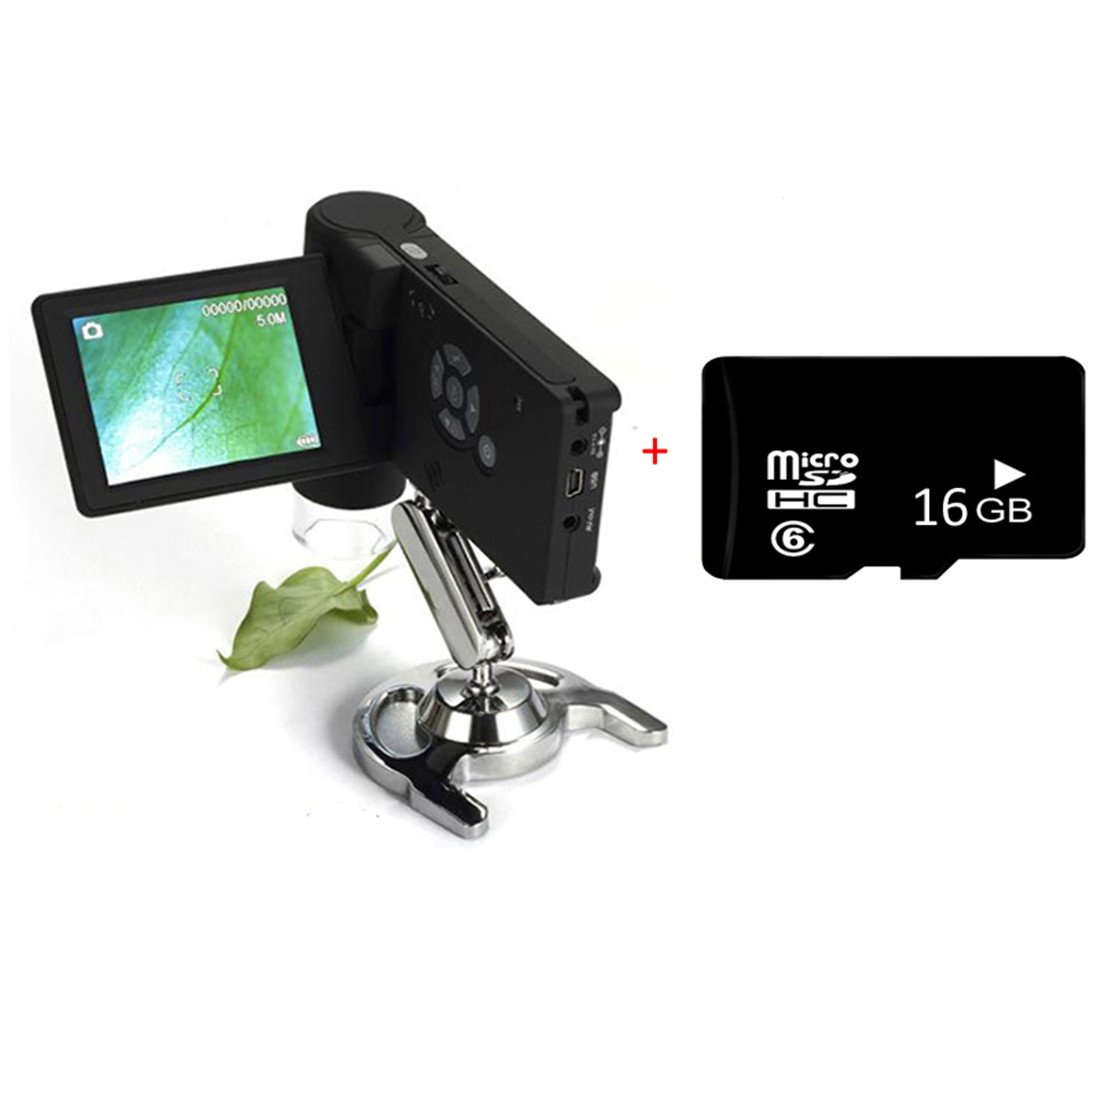 """Handheld Digital USB Microscope 3"""" TFT LCD Screen 200X 500X Magnifier Camera 16GB 5MP Video Microscope with Adjustable Stand"""